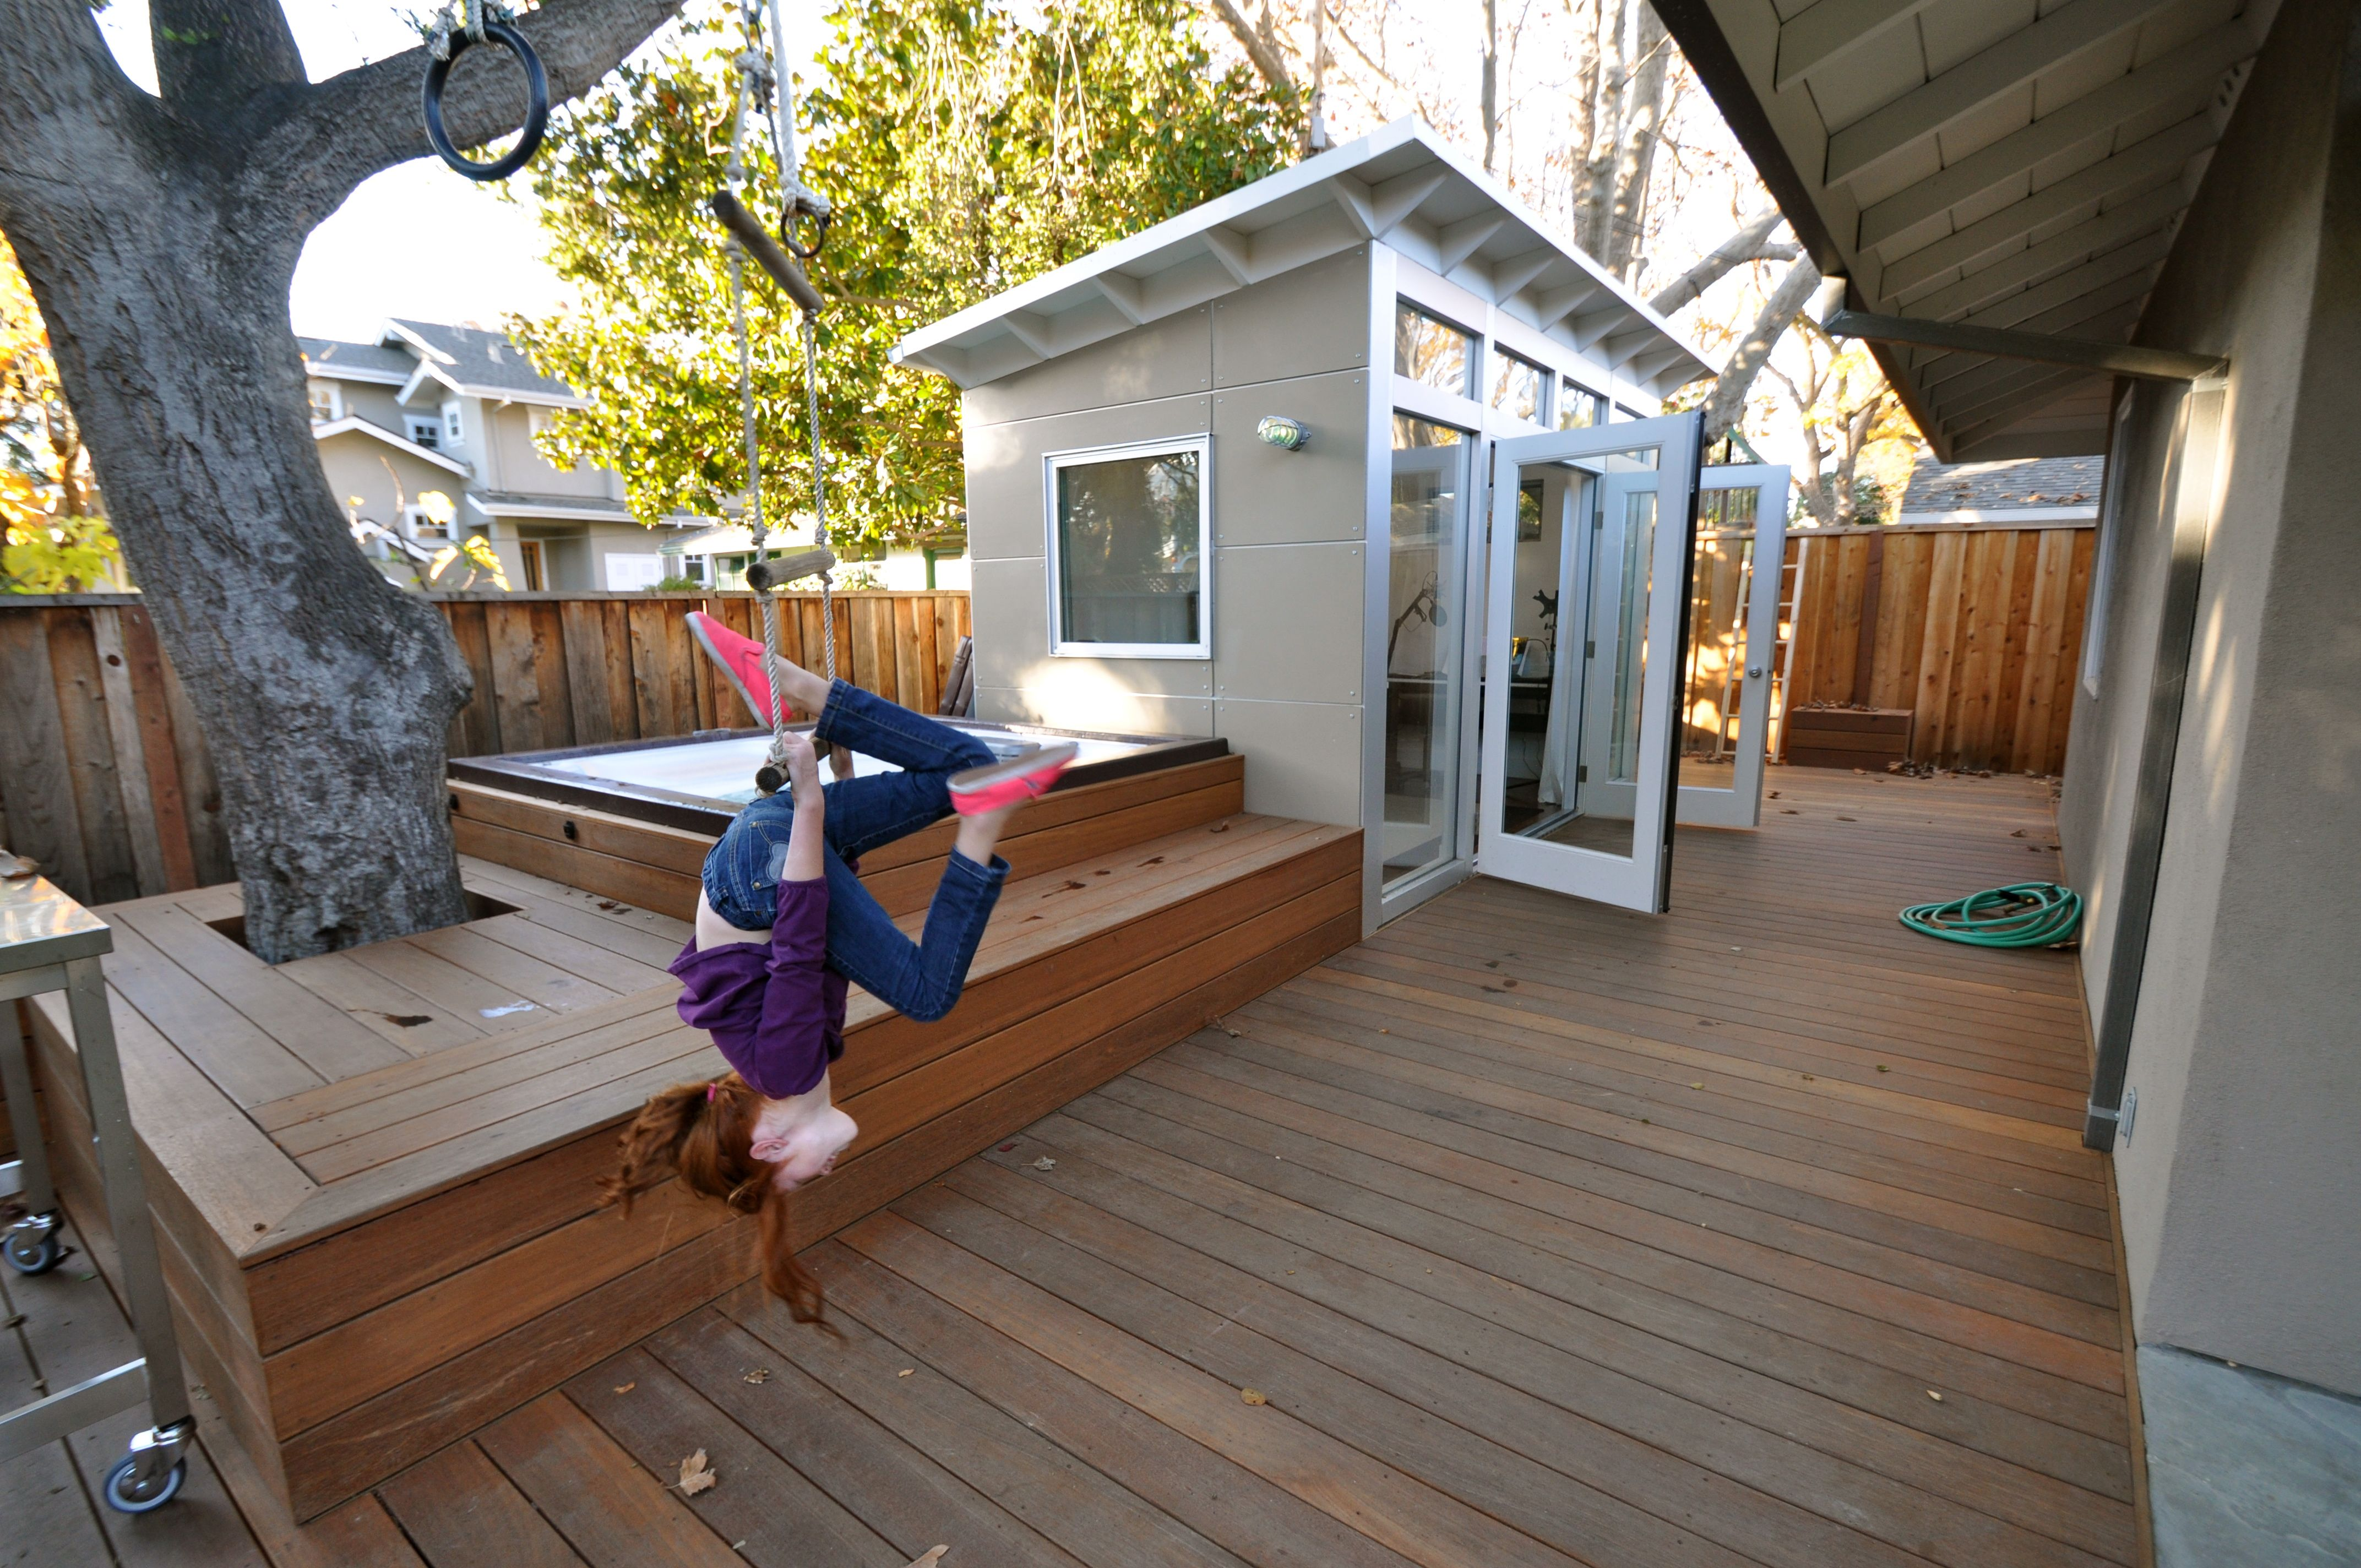 Kids play both inside and around the for Backyard guest room